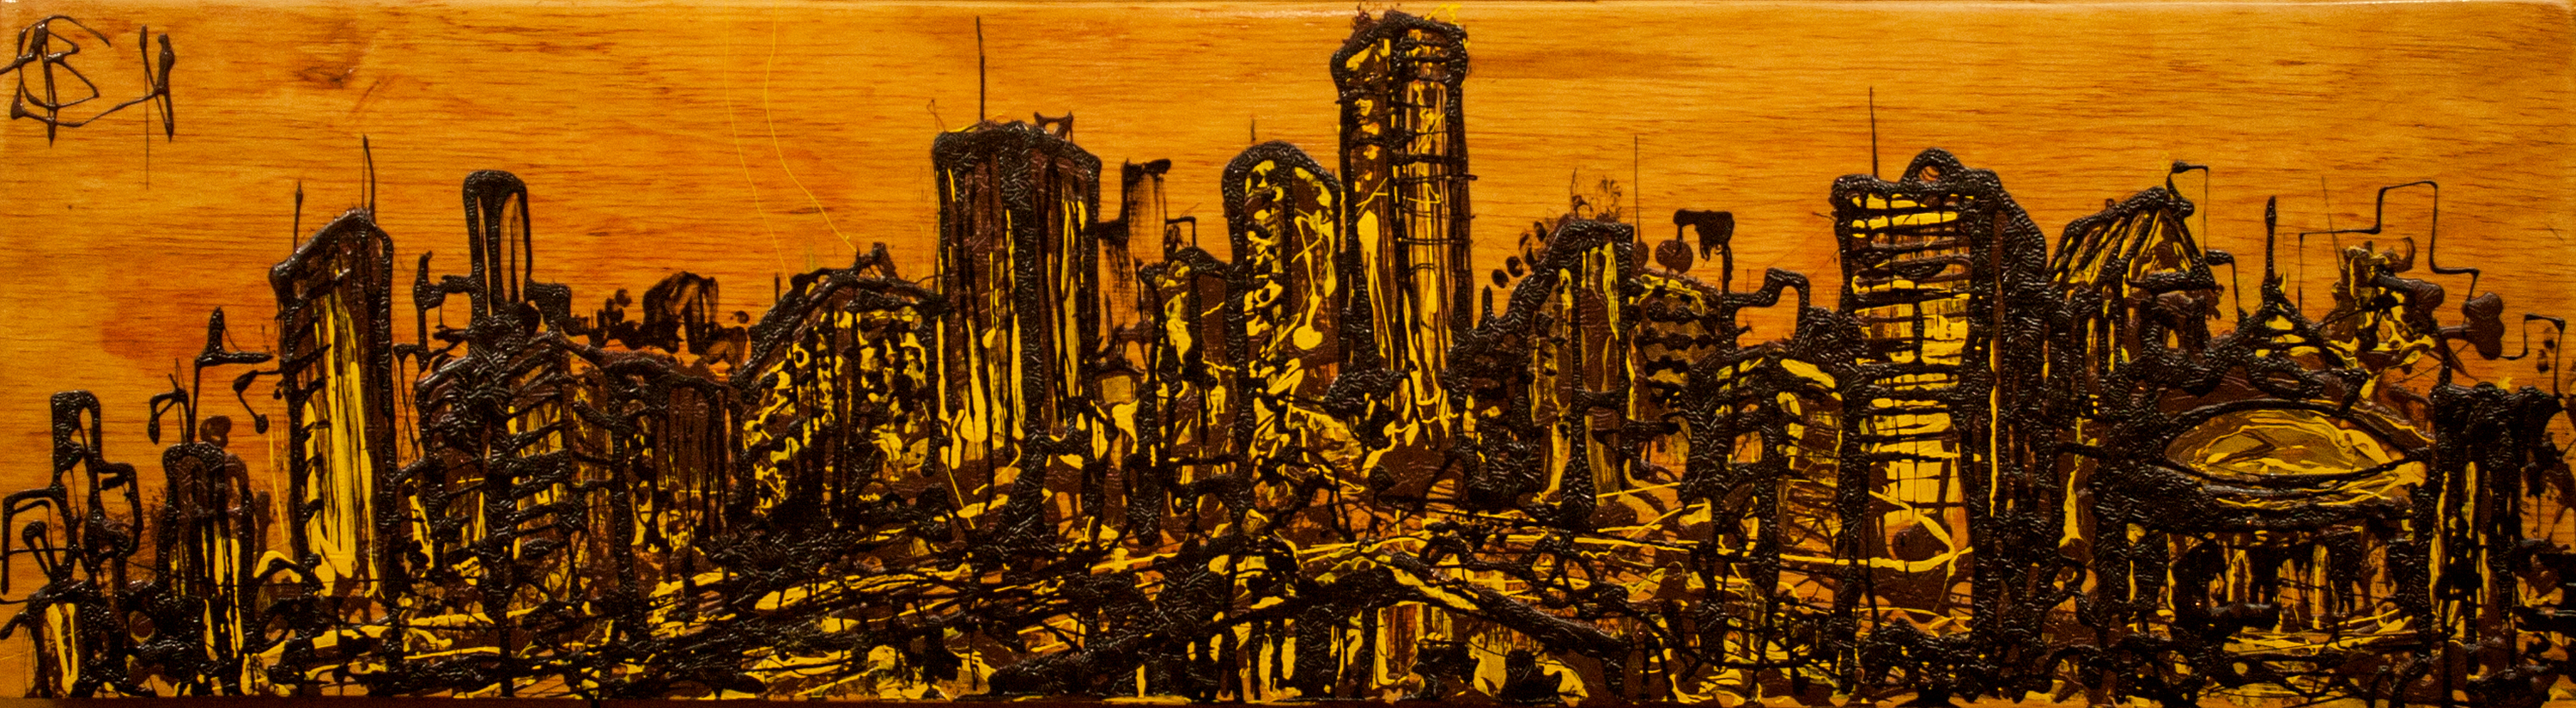 Cityscapes thecity 8x30 q7aved